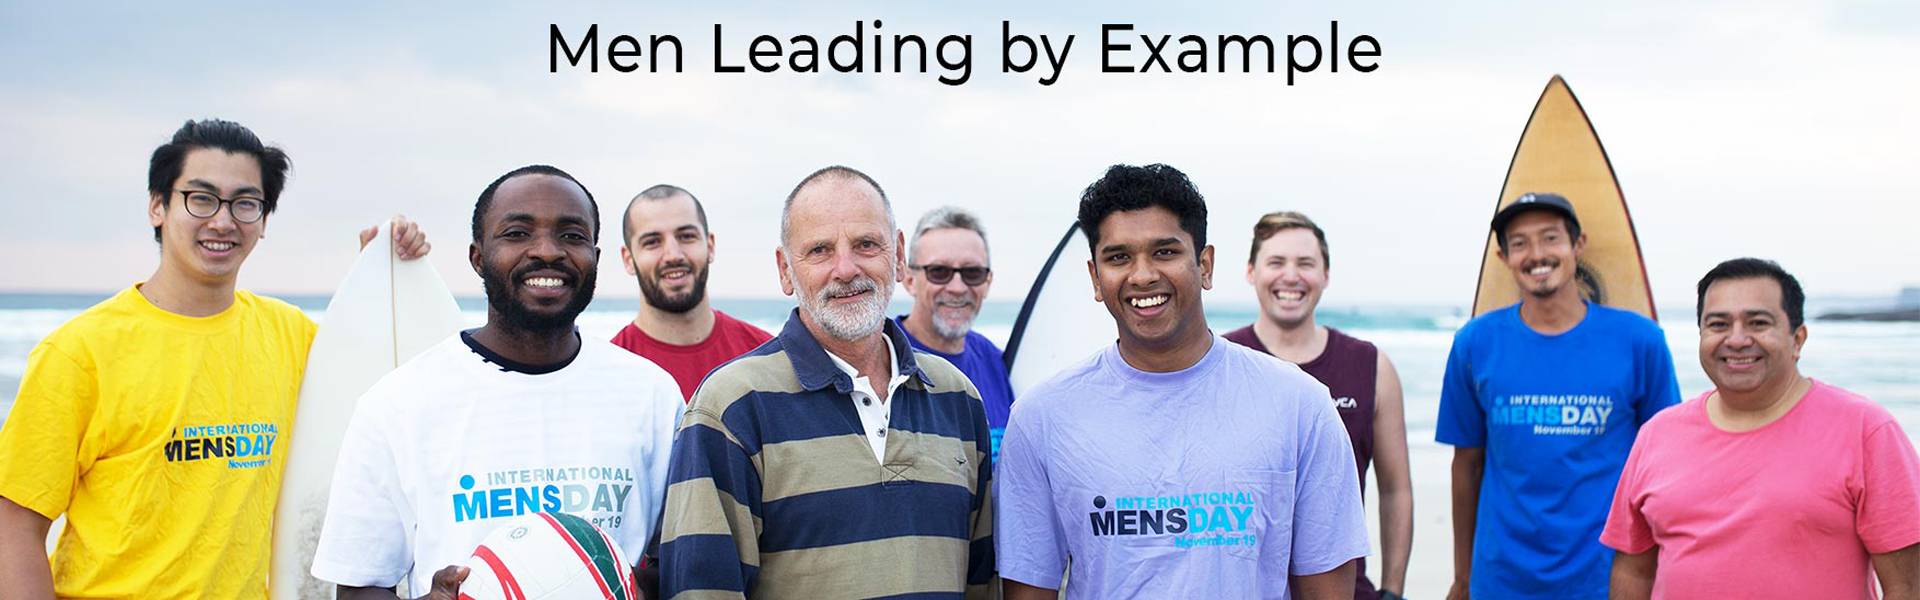 Foundation supports International Mens Day